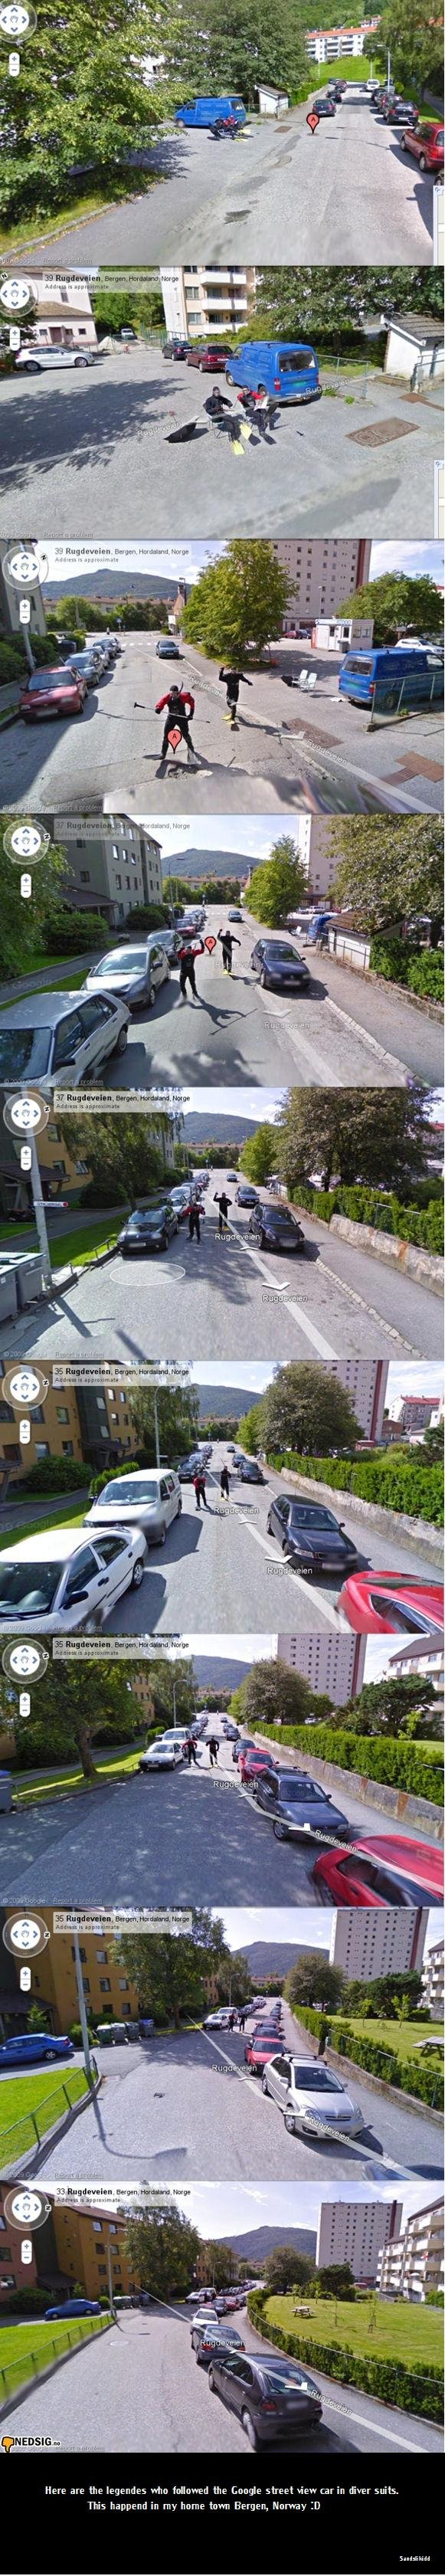 """Google street view win!. Got to love them . mm p. apple: -aerun: III"""" Lorre y. It .5 Here are the who followed the Beagle street view car in diver siris. This h"""